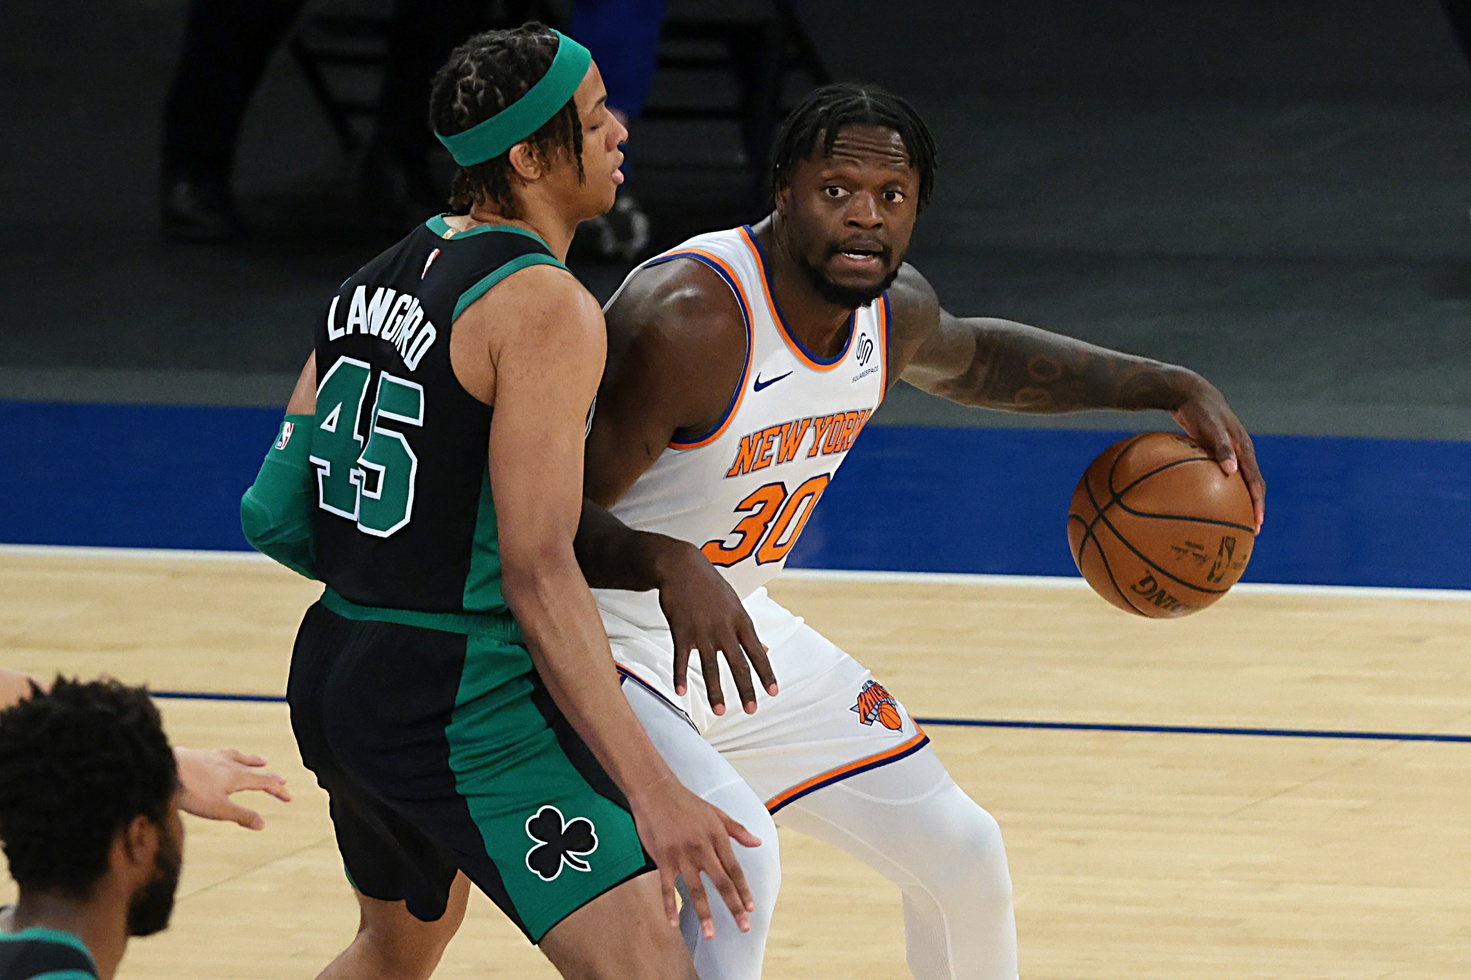 Knicks look to lock up No. 4 seed with win vs. Celtics